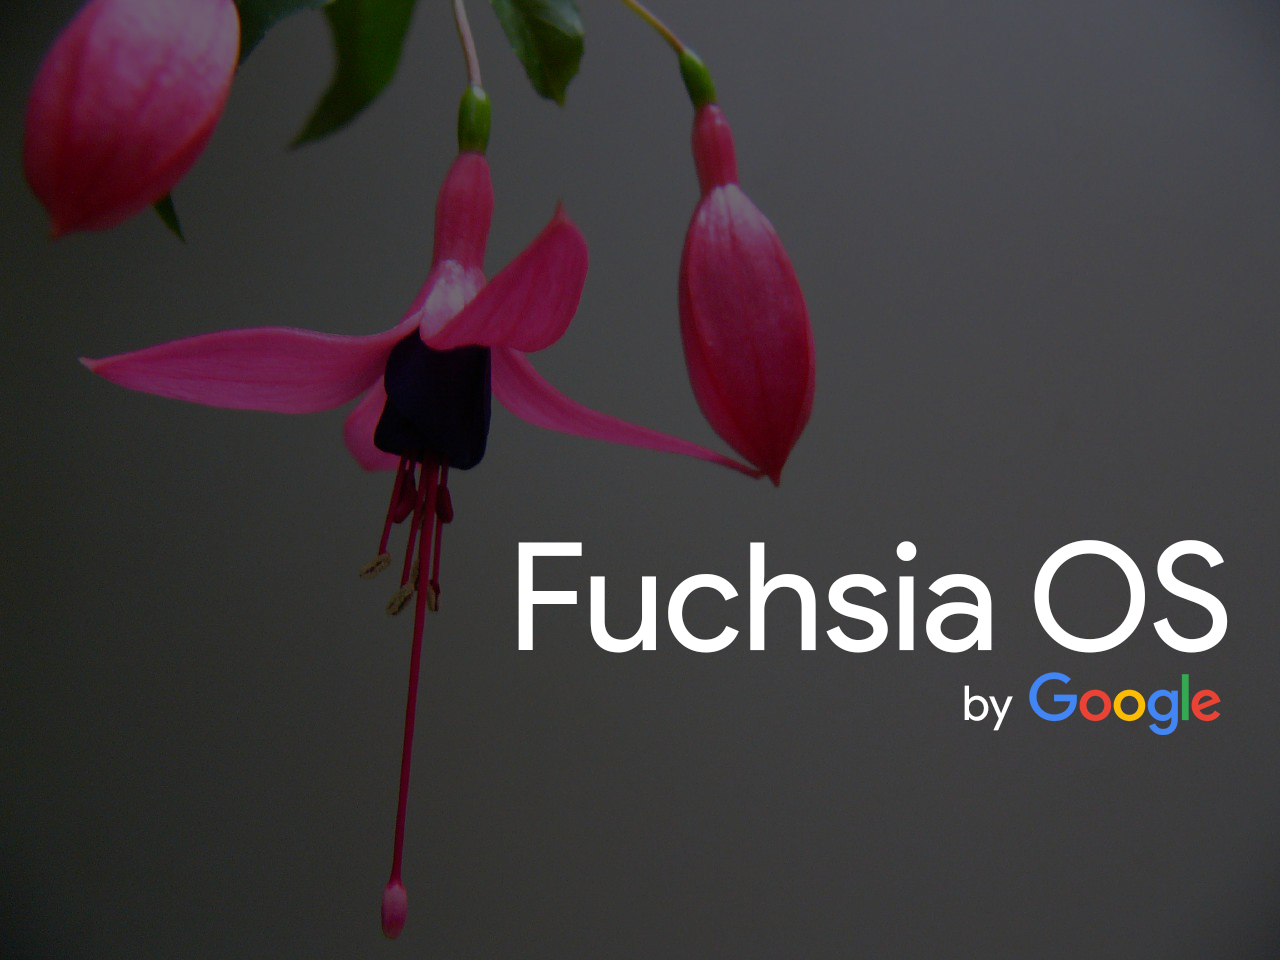 Is Google Really Replacing Android With Fuchsia OS?